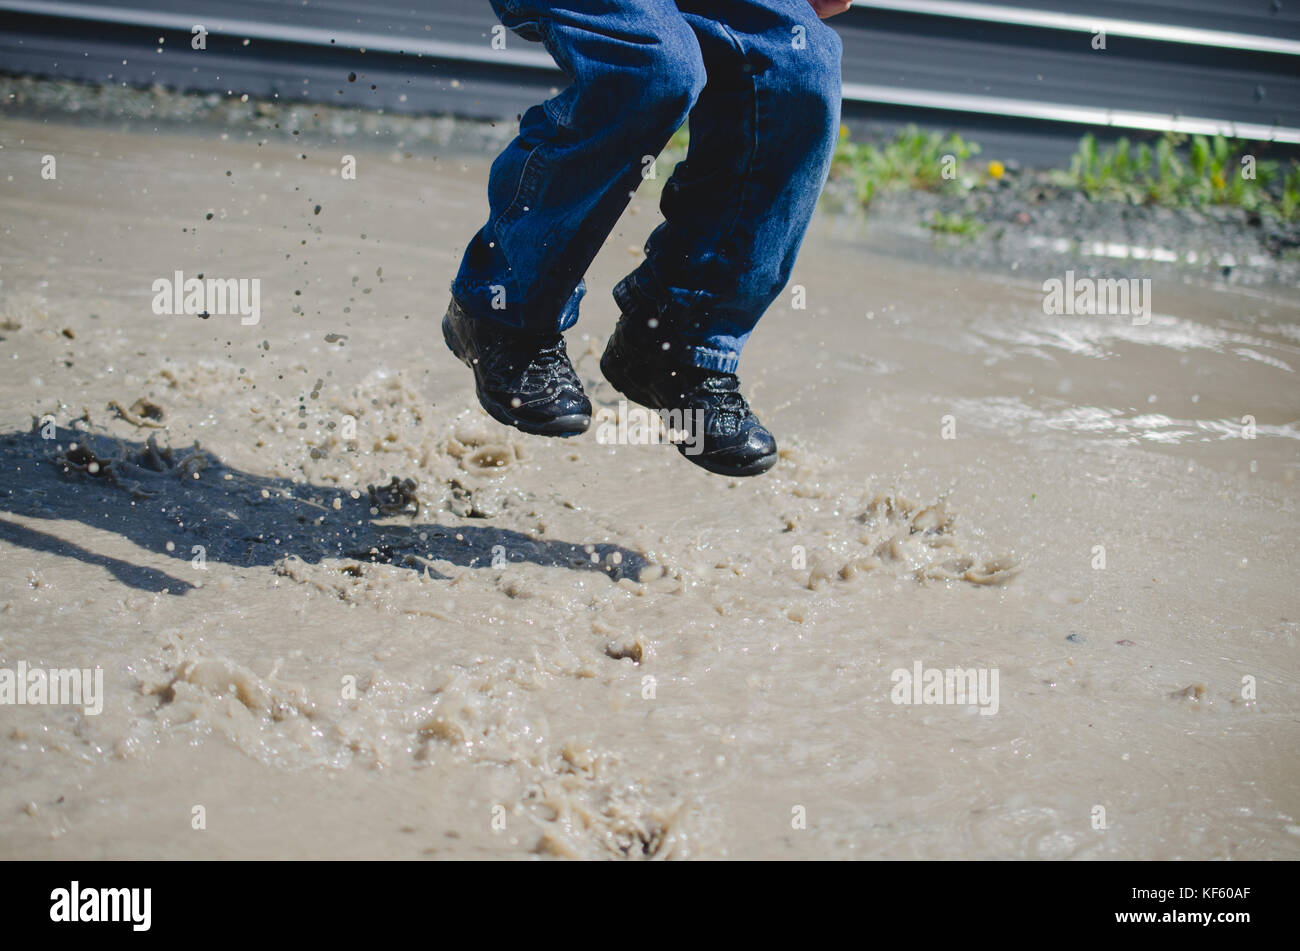 Child jumping in a mud puddle feet only - Stock Image